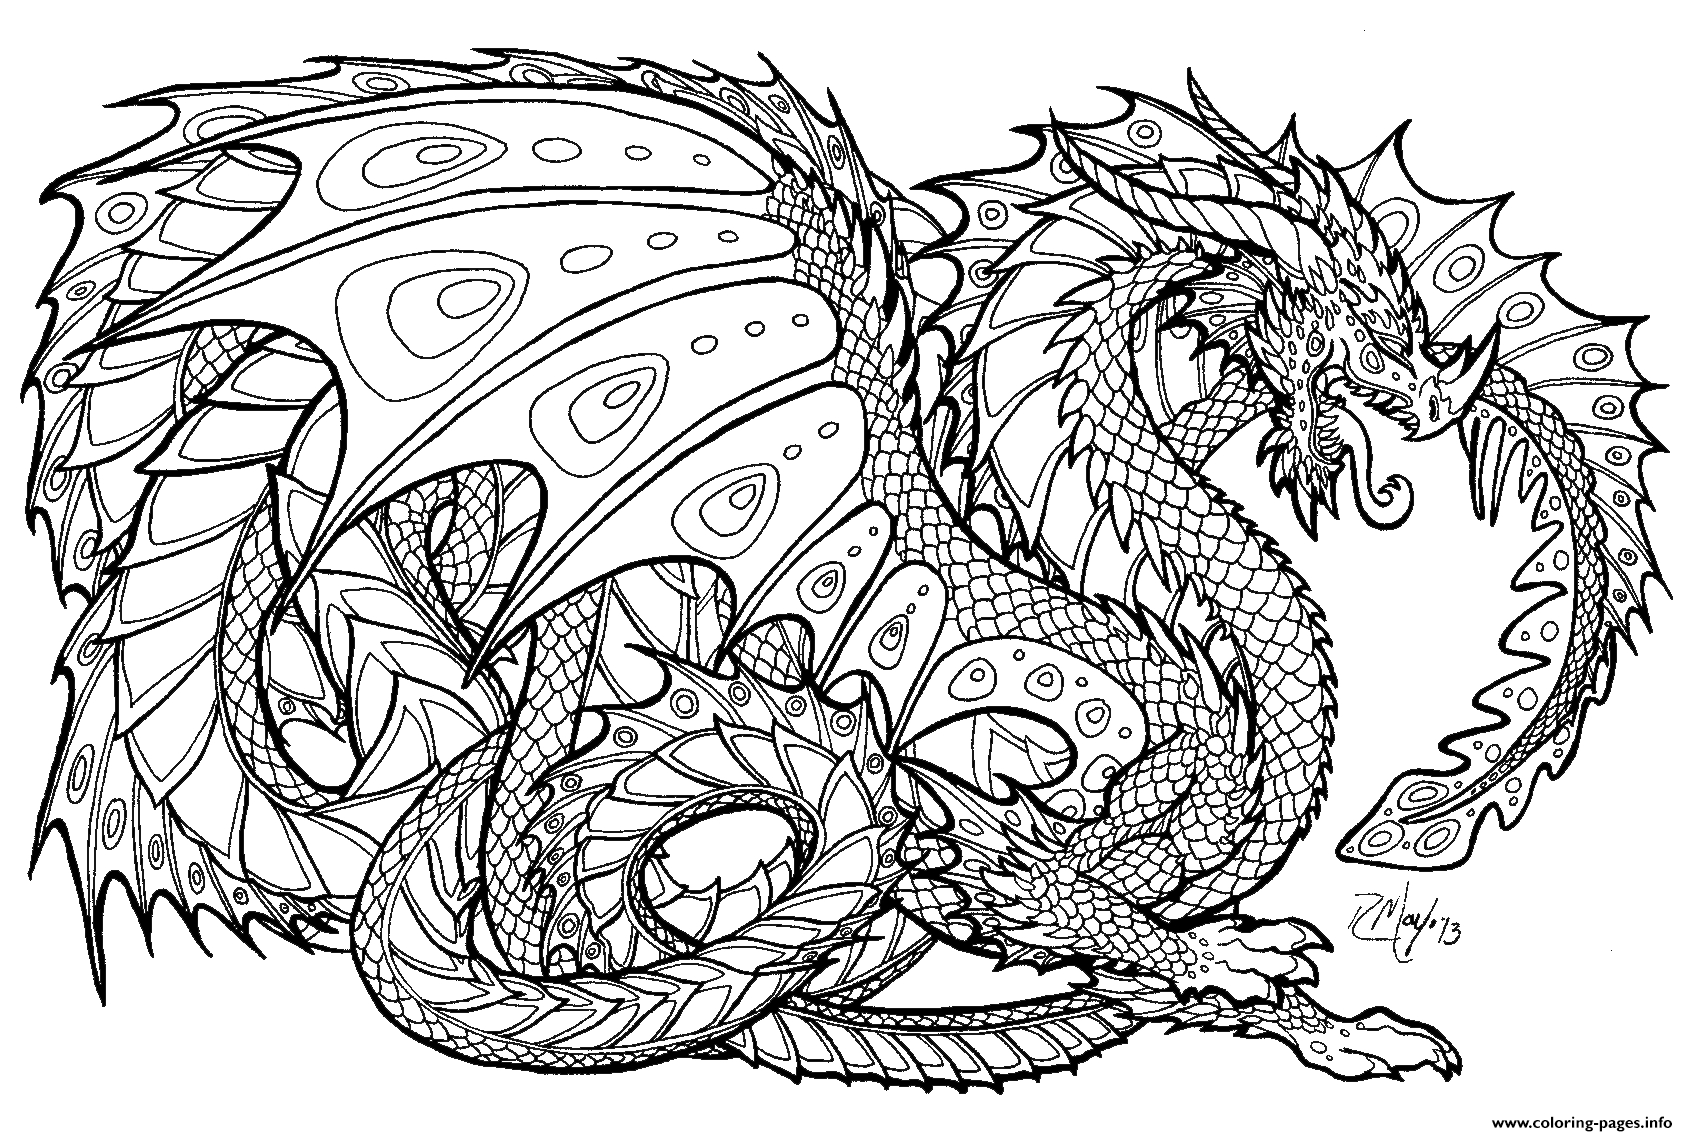 Coloring Pages To Print Chinese Dragon Coloring Pages Print Realistic Adult 16881136